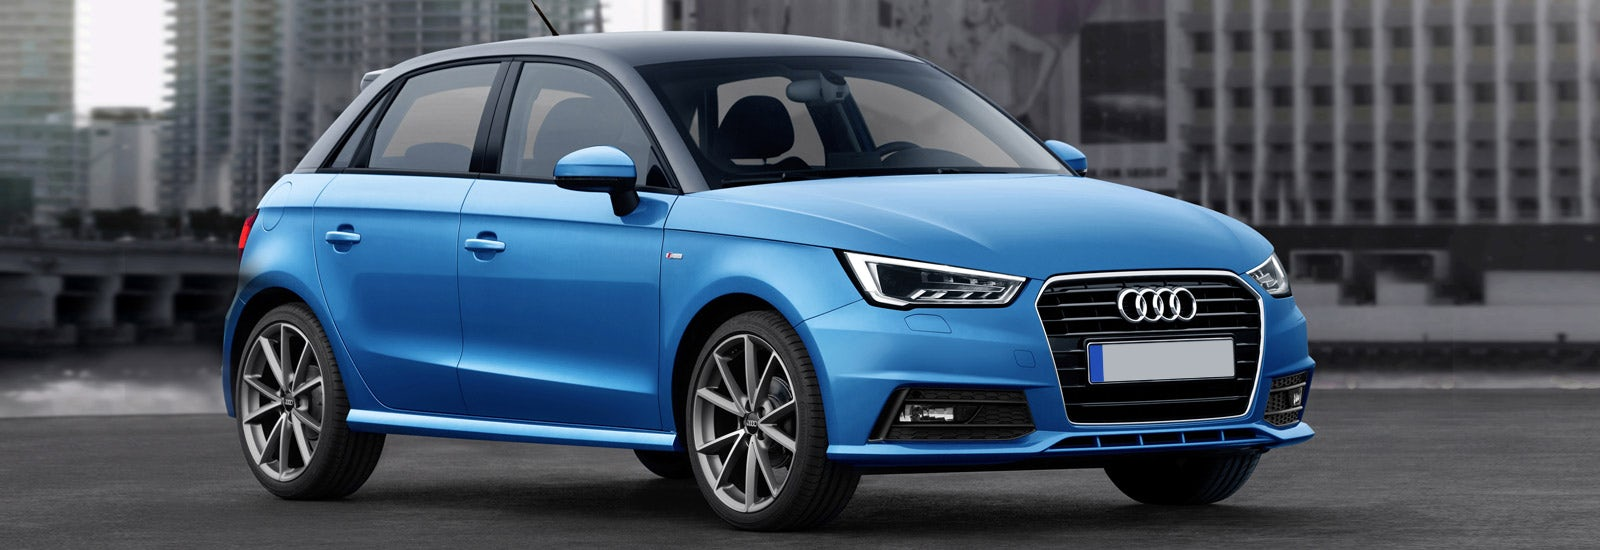 For example an audi a1 fitted with the 1 4 litre tfsi petrol engine achieves a fuel economy figure of 4 8l 100km to find its mpg figure we simply divide